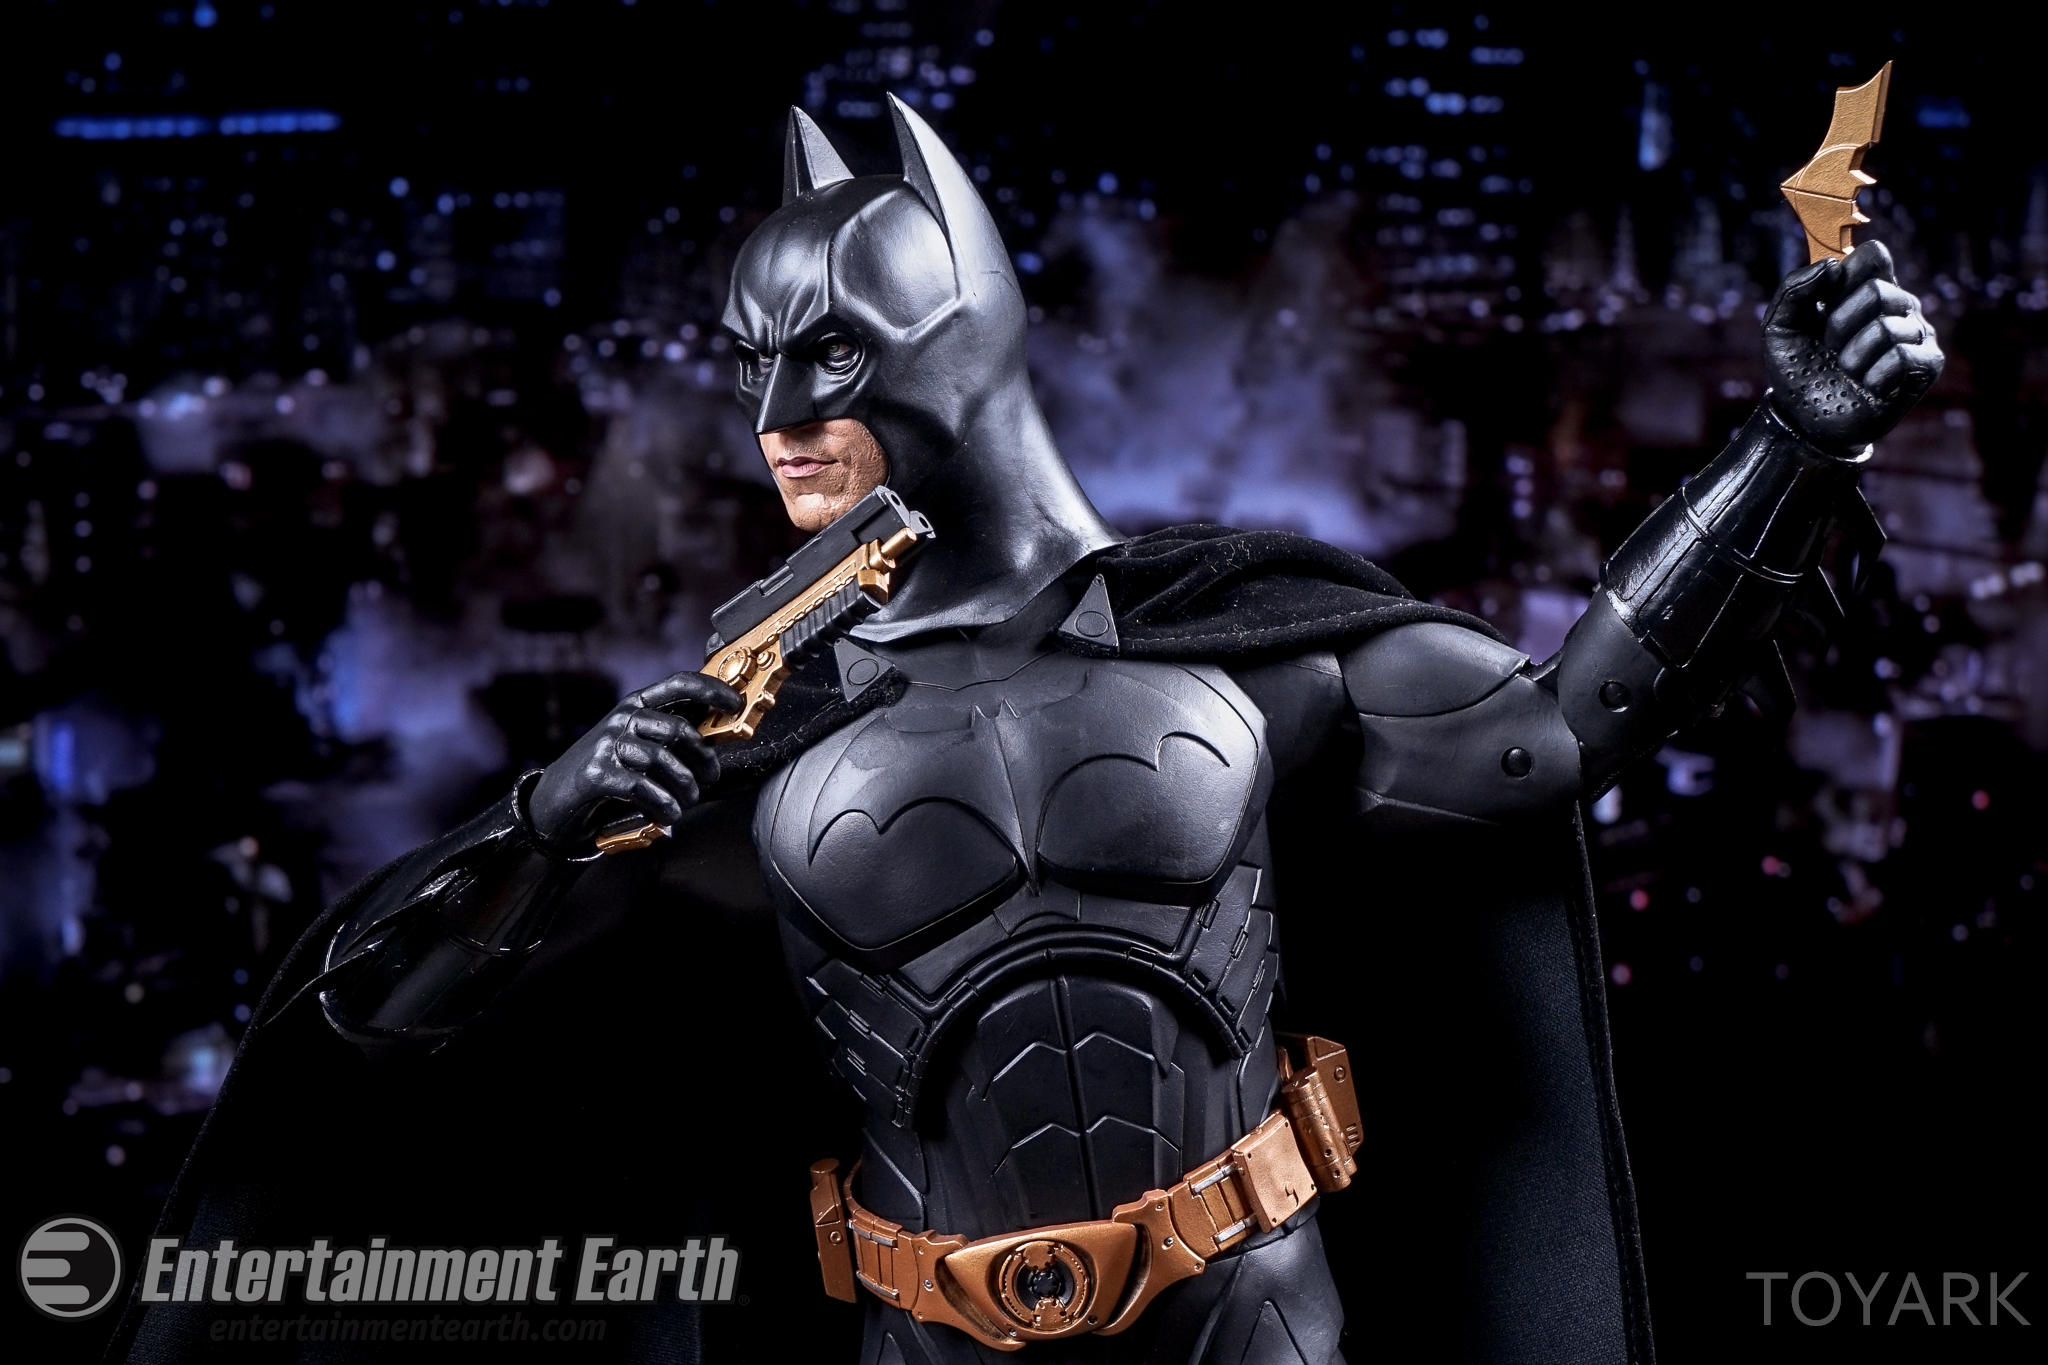 http://news.toyark.com/wp-content/uploads/sites/4/2016/07/NECA-Batman-Begins-061.jpg